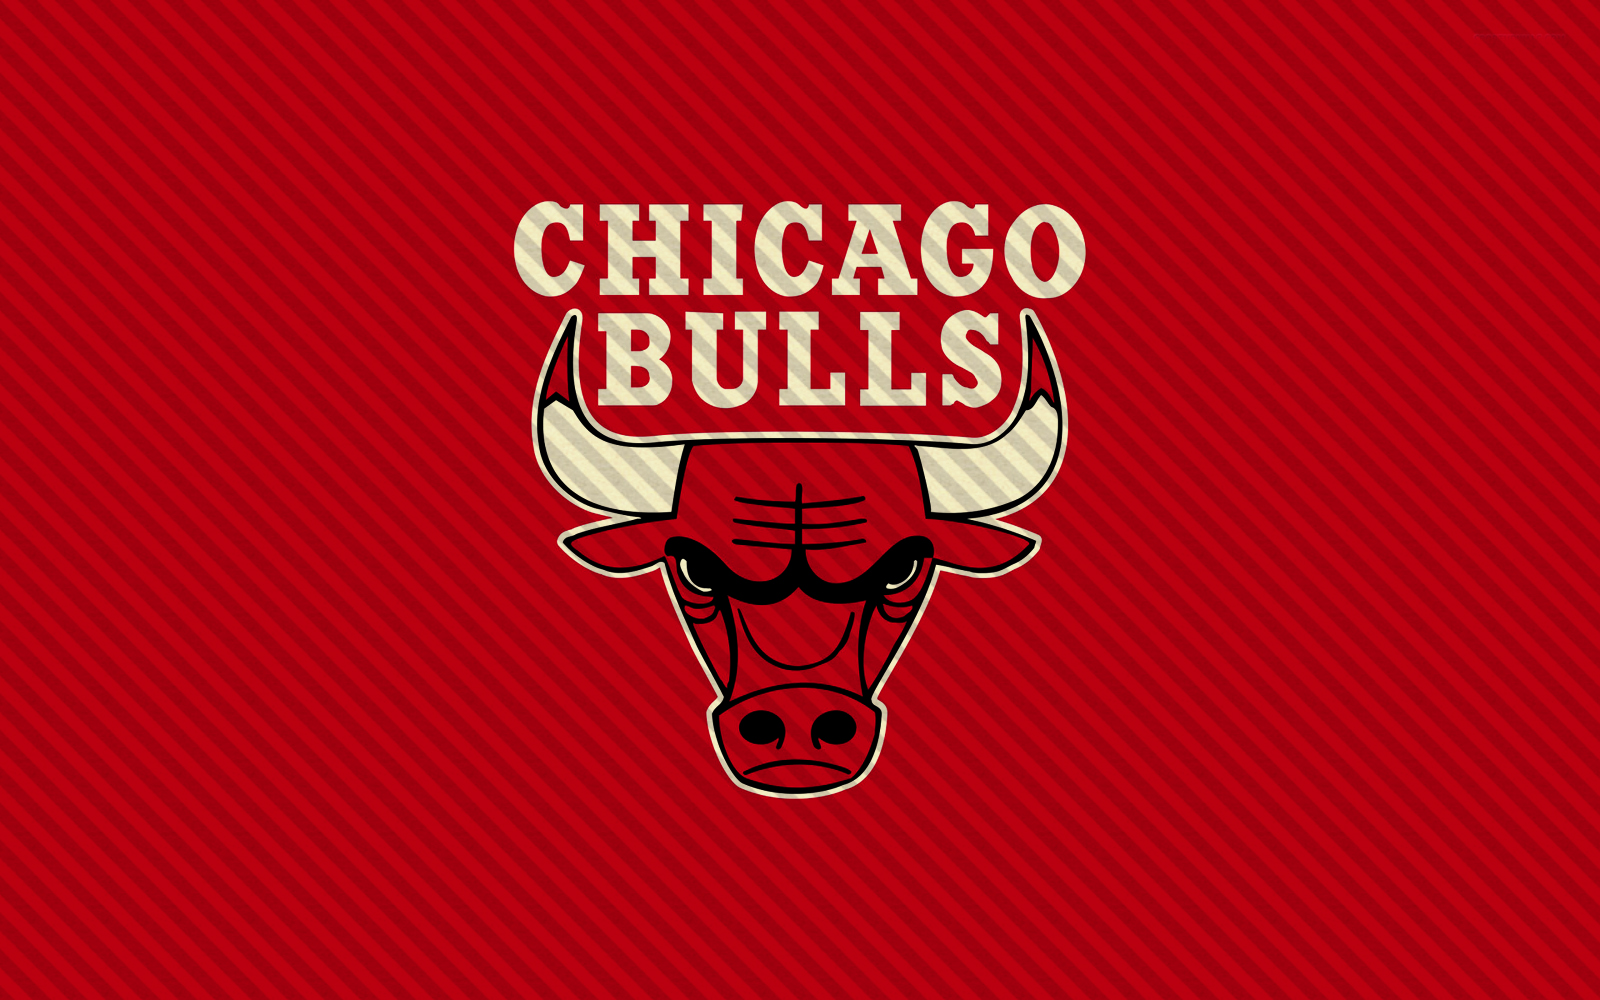 Chicago Bulls Logo Red Background Lines HD Wallpaper 1600x1000